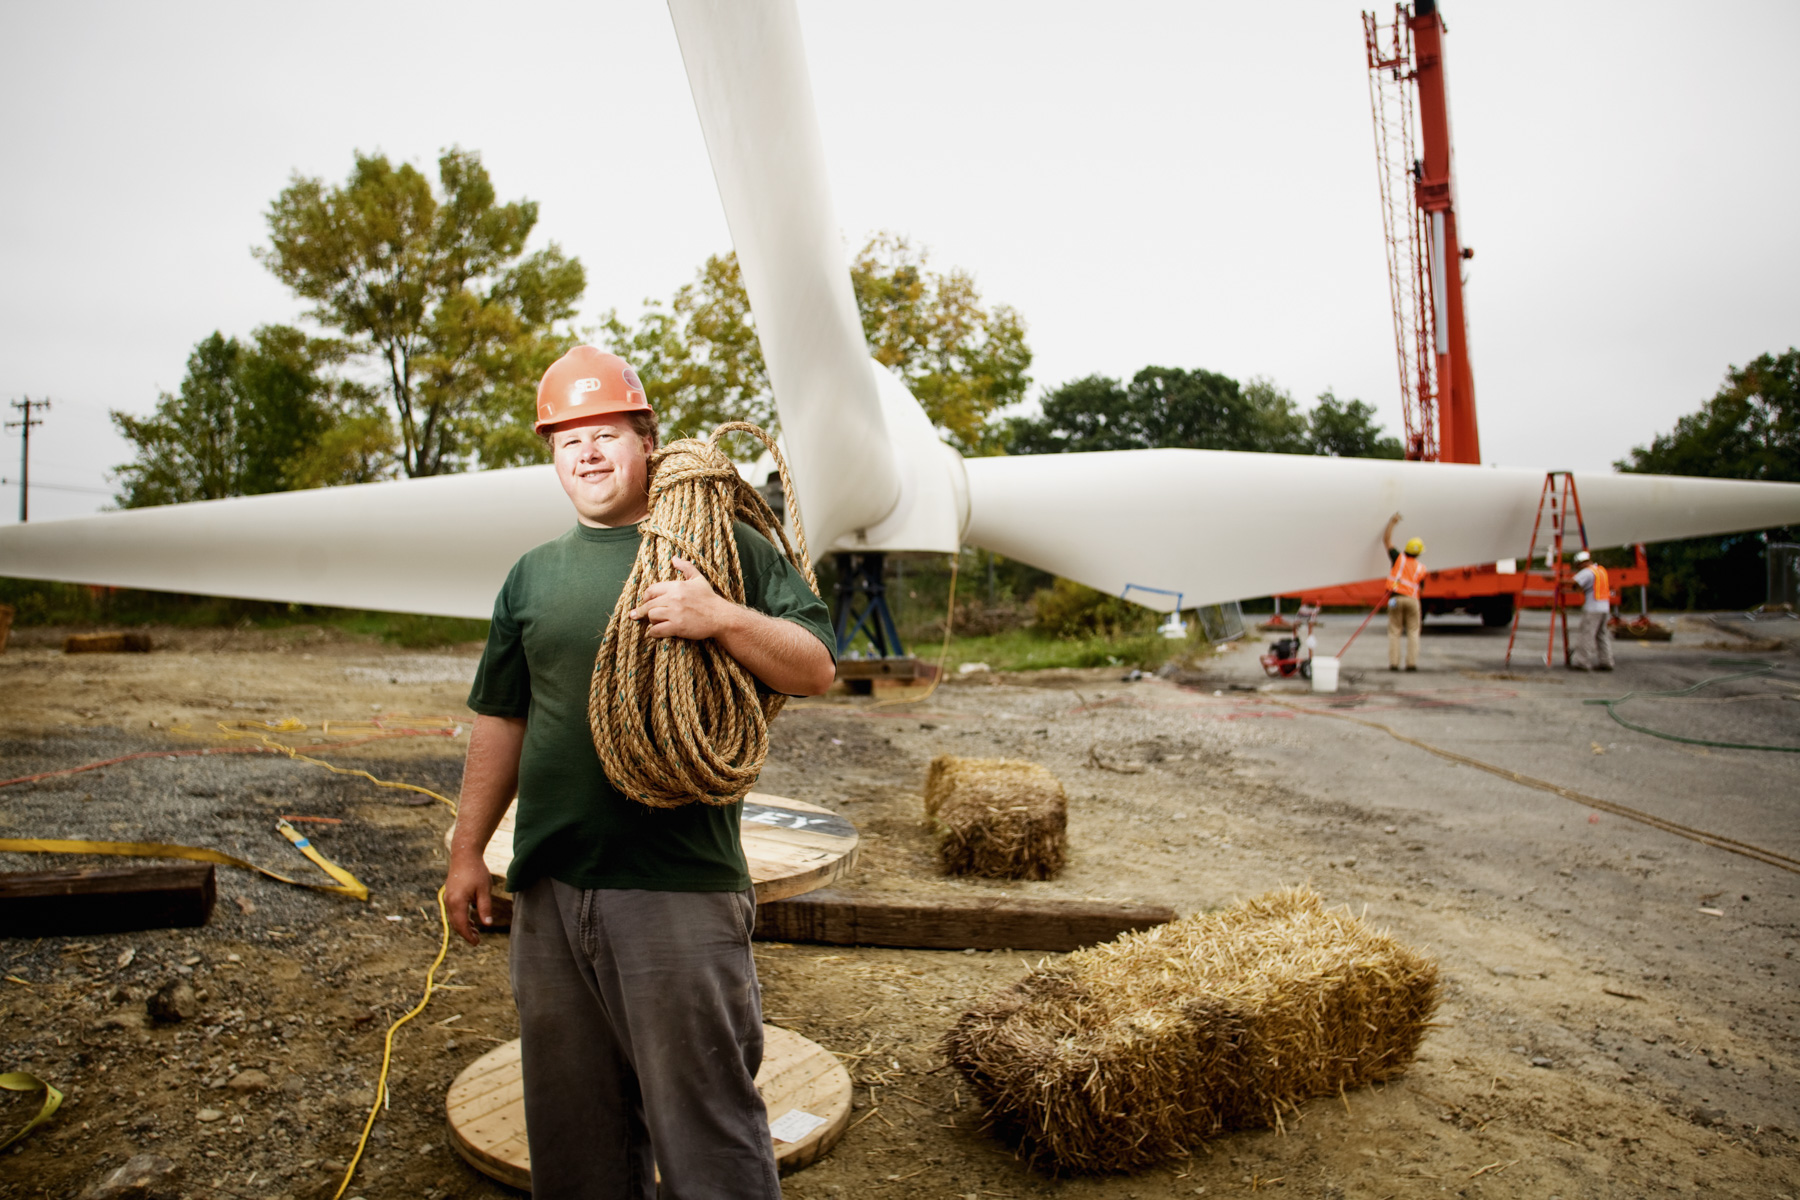 wind-turbine-construction-portrait-1.jpg